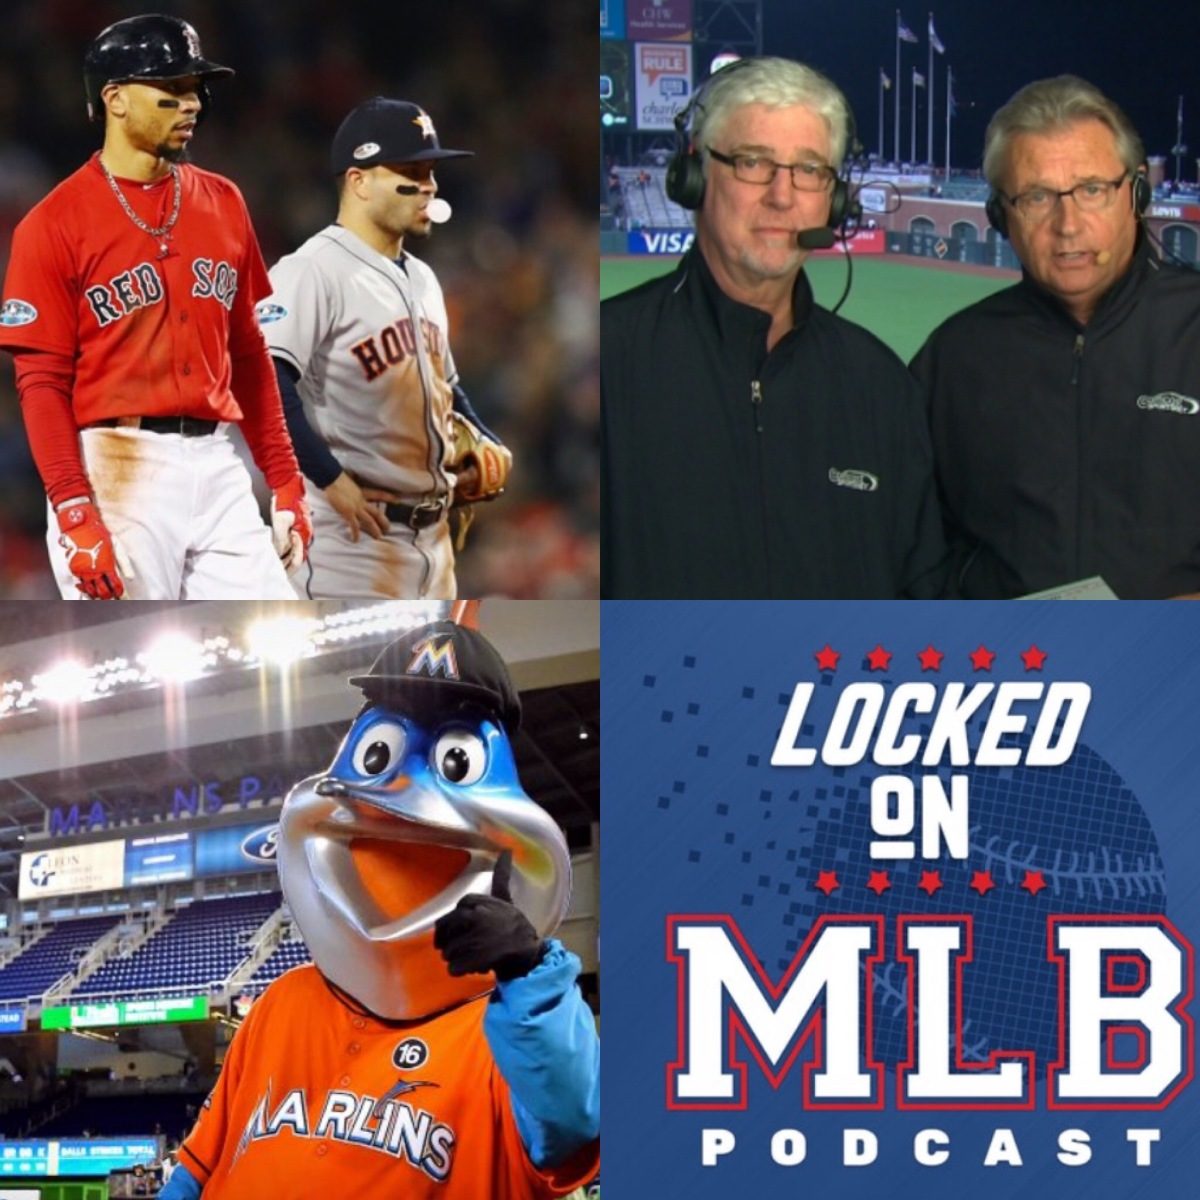 Big Weekend Series Ahead and Answering Tweets About Broadcasters and Marlins -  Locked On MLB for May 17, 2019